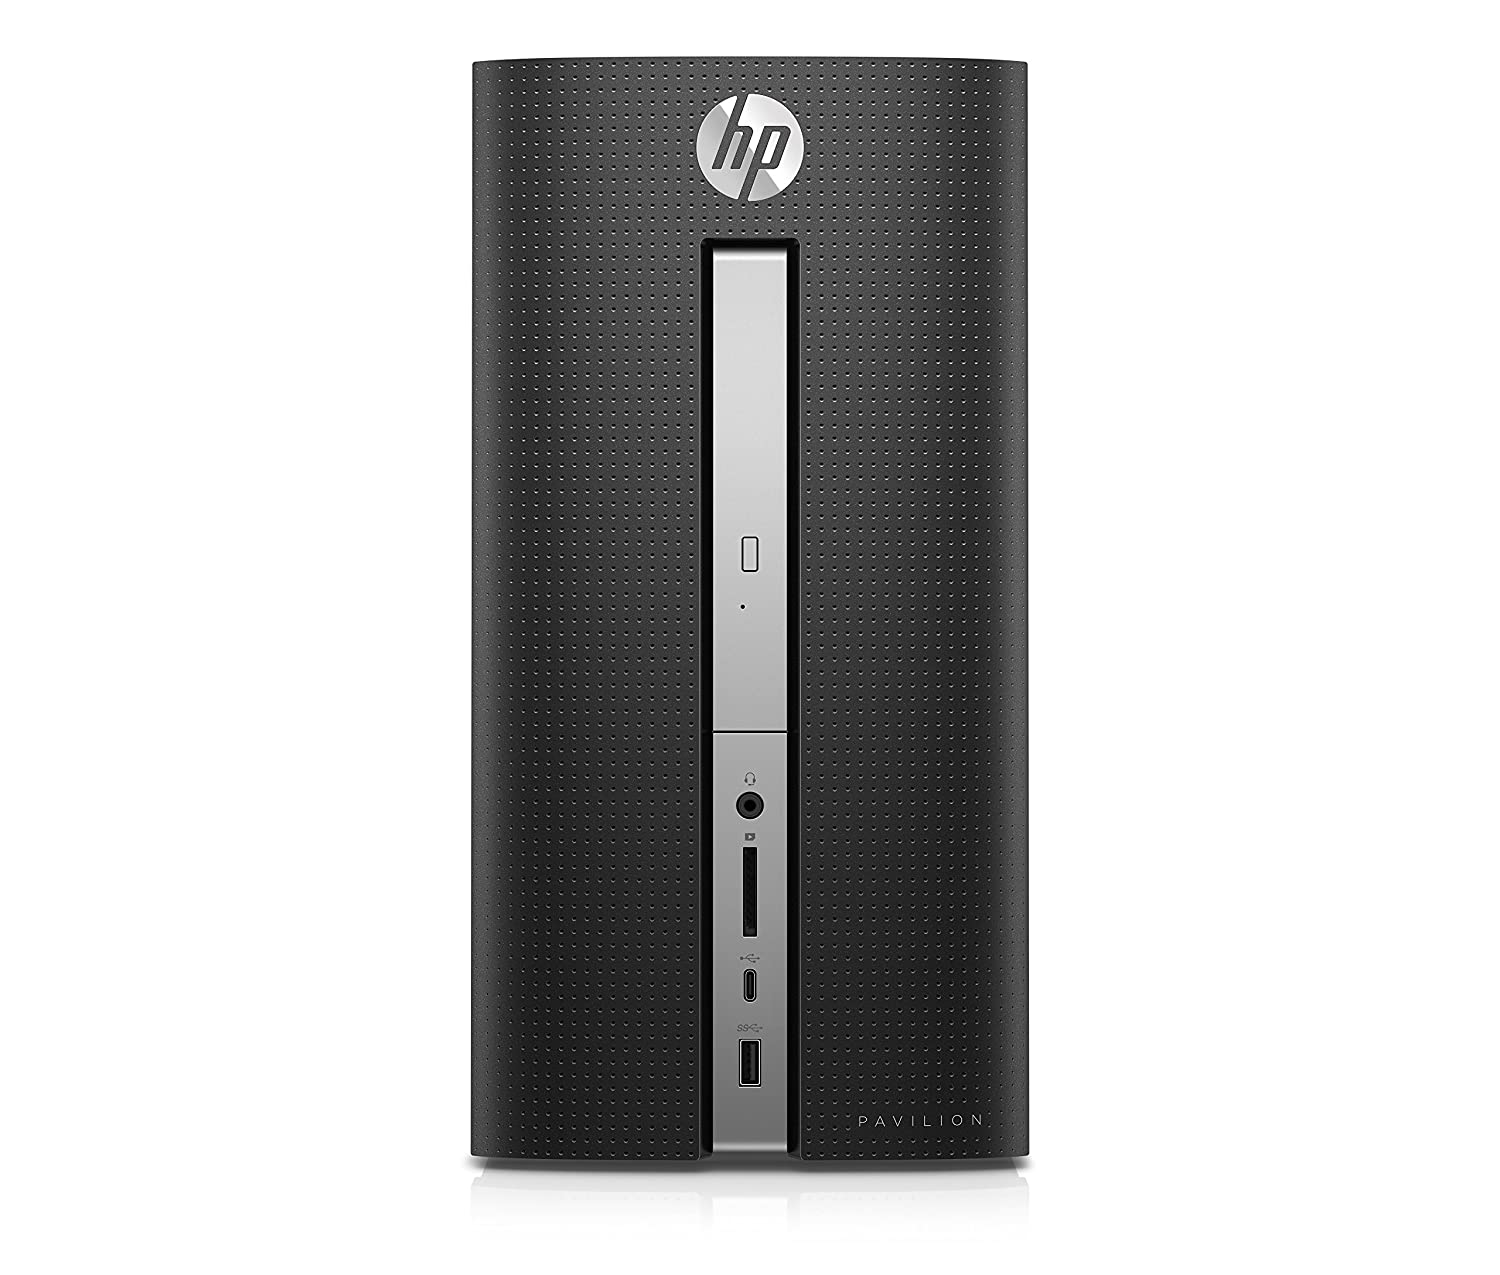 HP Pavilion 570-p049nl 3,5 GHz AMD A A10-9700 Negro Escritorio PC - Ordenador de sobremesa (3,5 GHz, AMD A, 8 GB, 1000 GB, DVD Super Multi, Windows 10 Home)